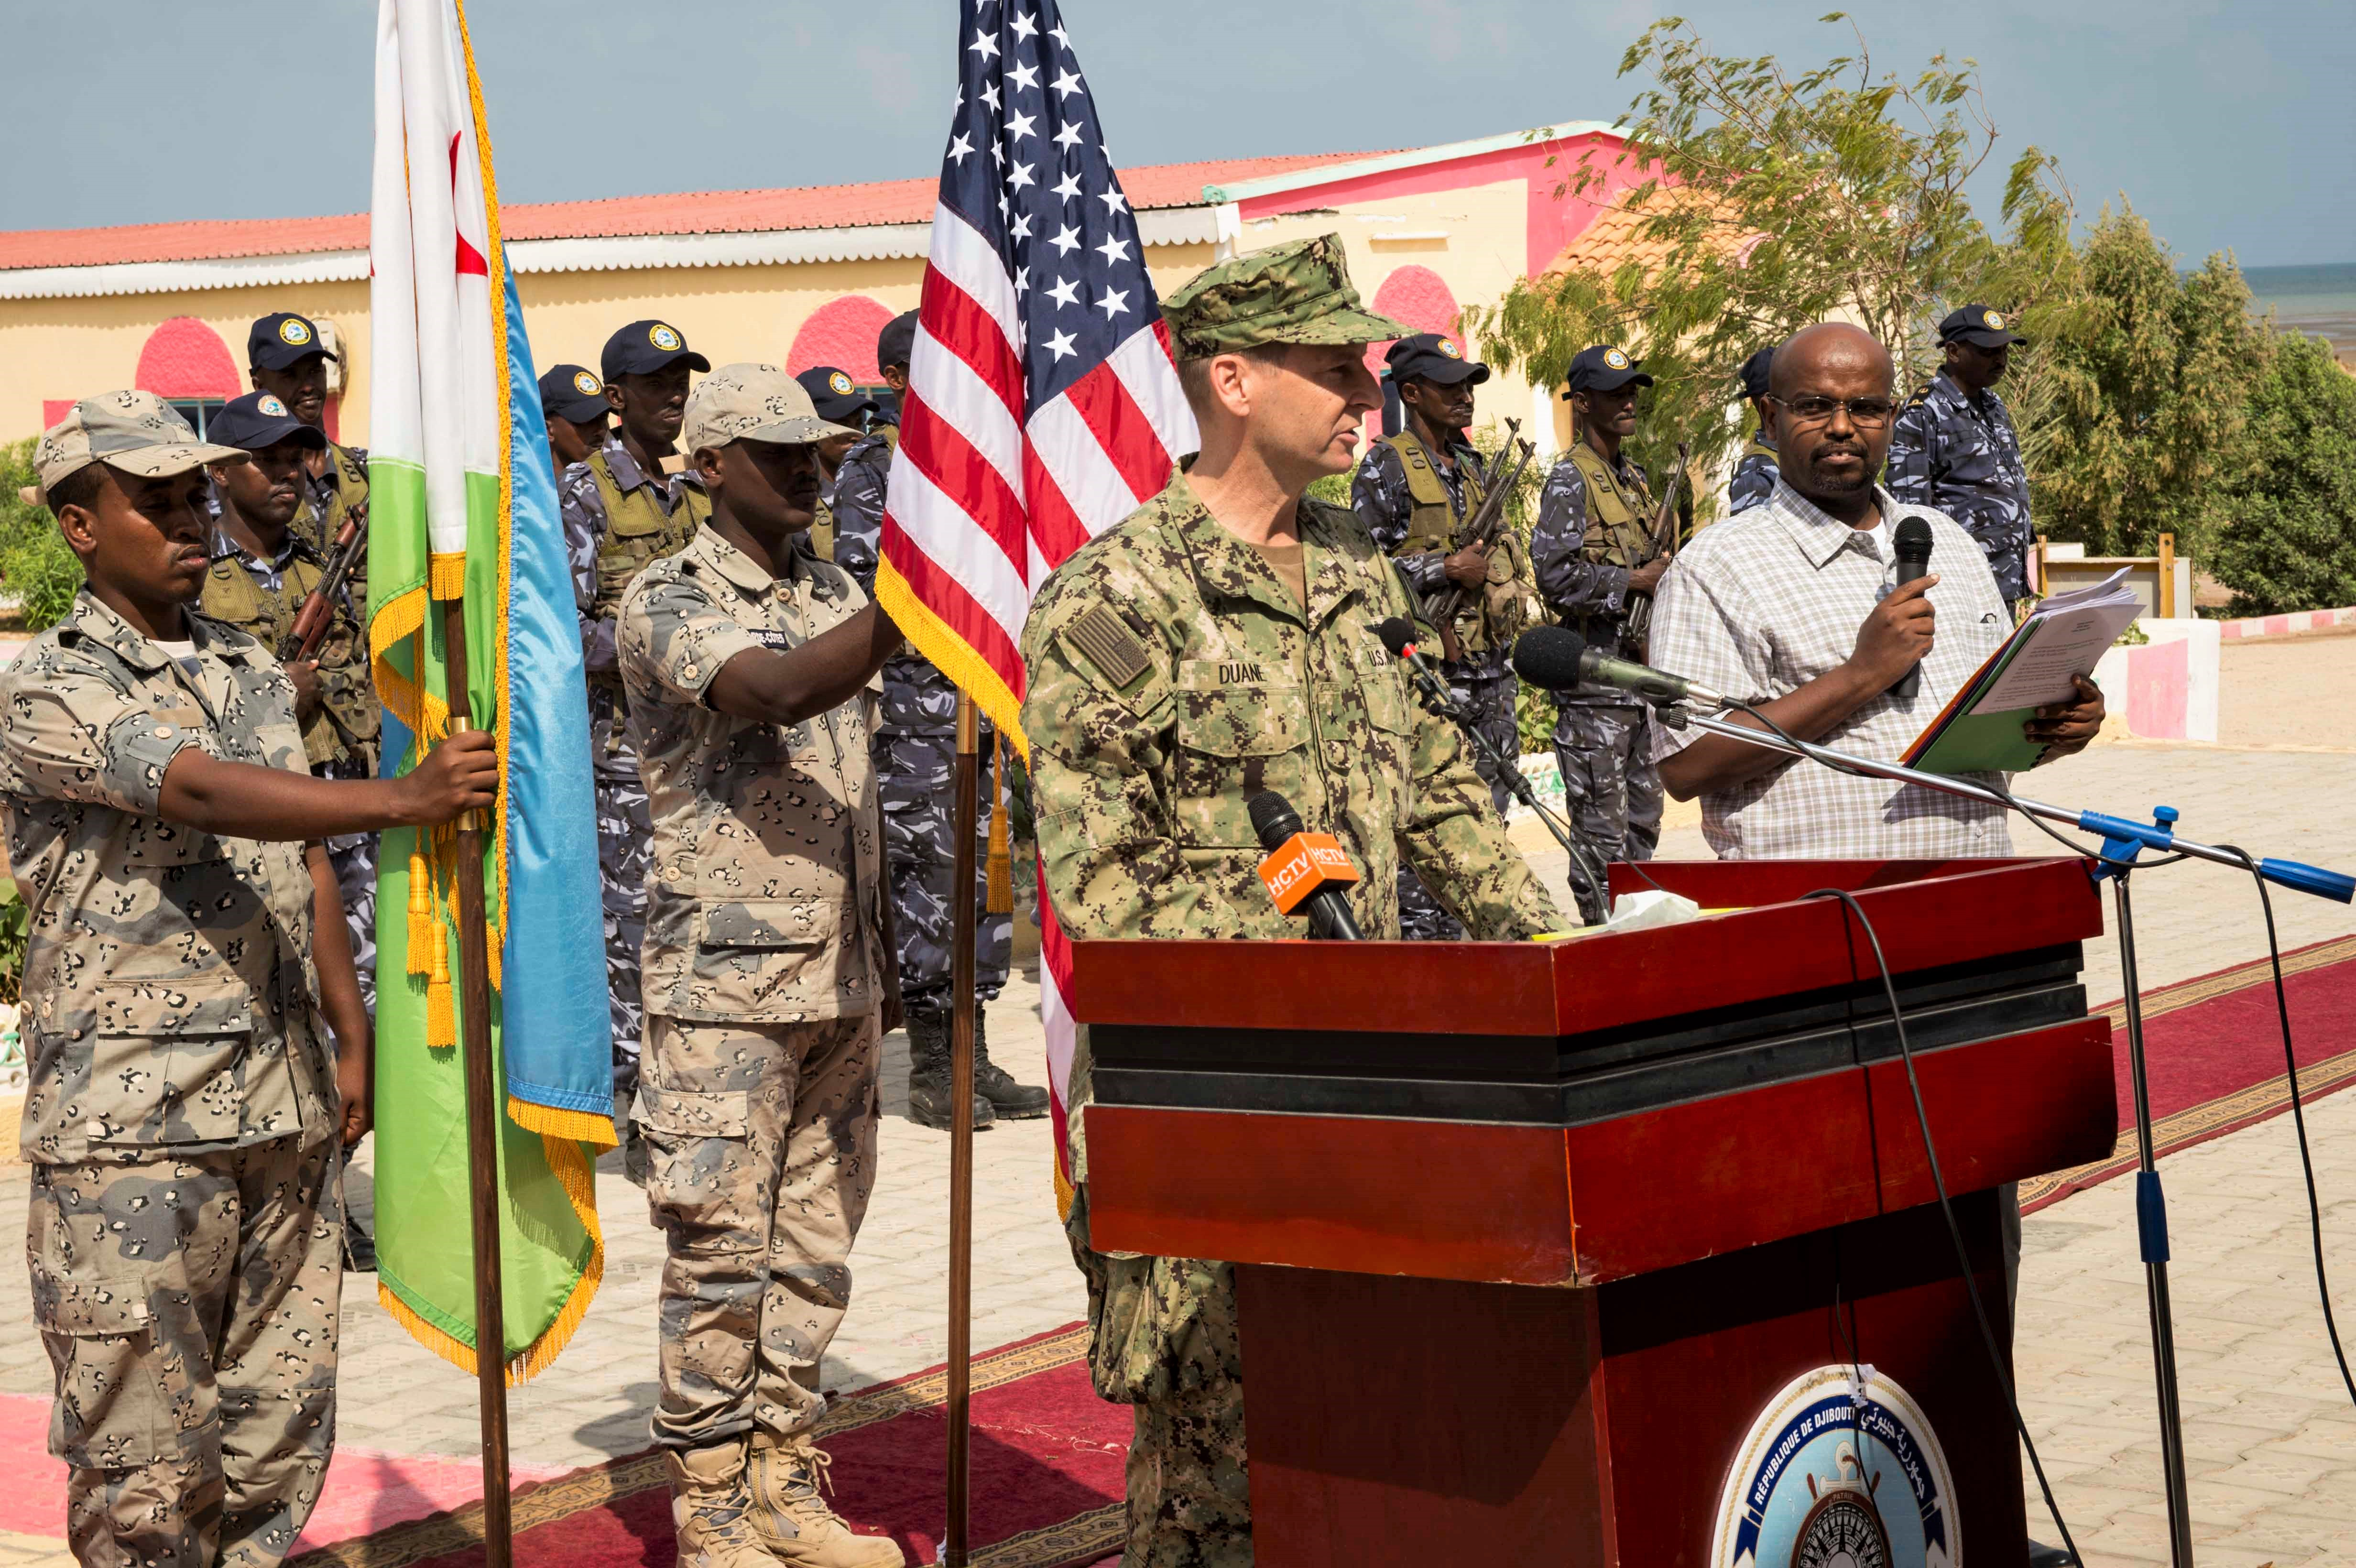 180131-N-KP948-180 DJIBOUTI (Jan. 31, 2018) Rear Adm. Shawn E. Duane, vice commander, U.S. 6th Fleet, gives remarks during the opening ceremony for exercise Cutlass Express 2018 Jan. 31 in Djibouti, Djibouti. Cutlass Express is designed to improve regional cooperation, maritime domain awareness and information sharing practices to increase capabilities between the U.S., East African and Western Indian Ocean nations. (U.S. Navy photo by Mass Communication Specialist 2nd Class Alyssa Weeks / Released)